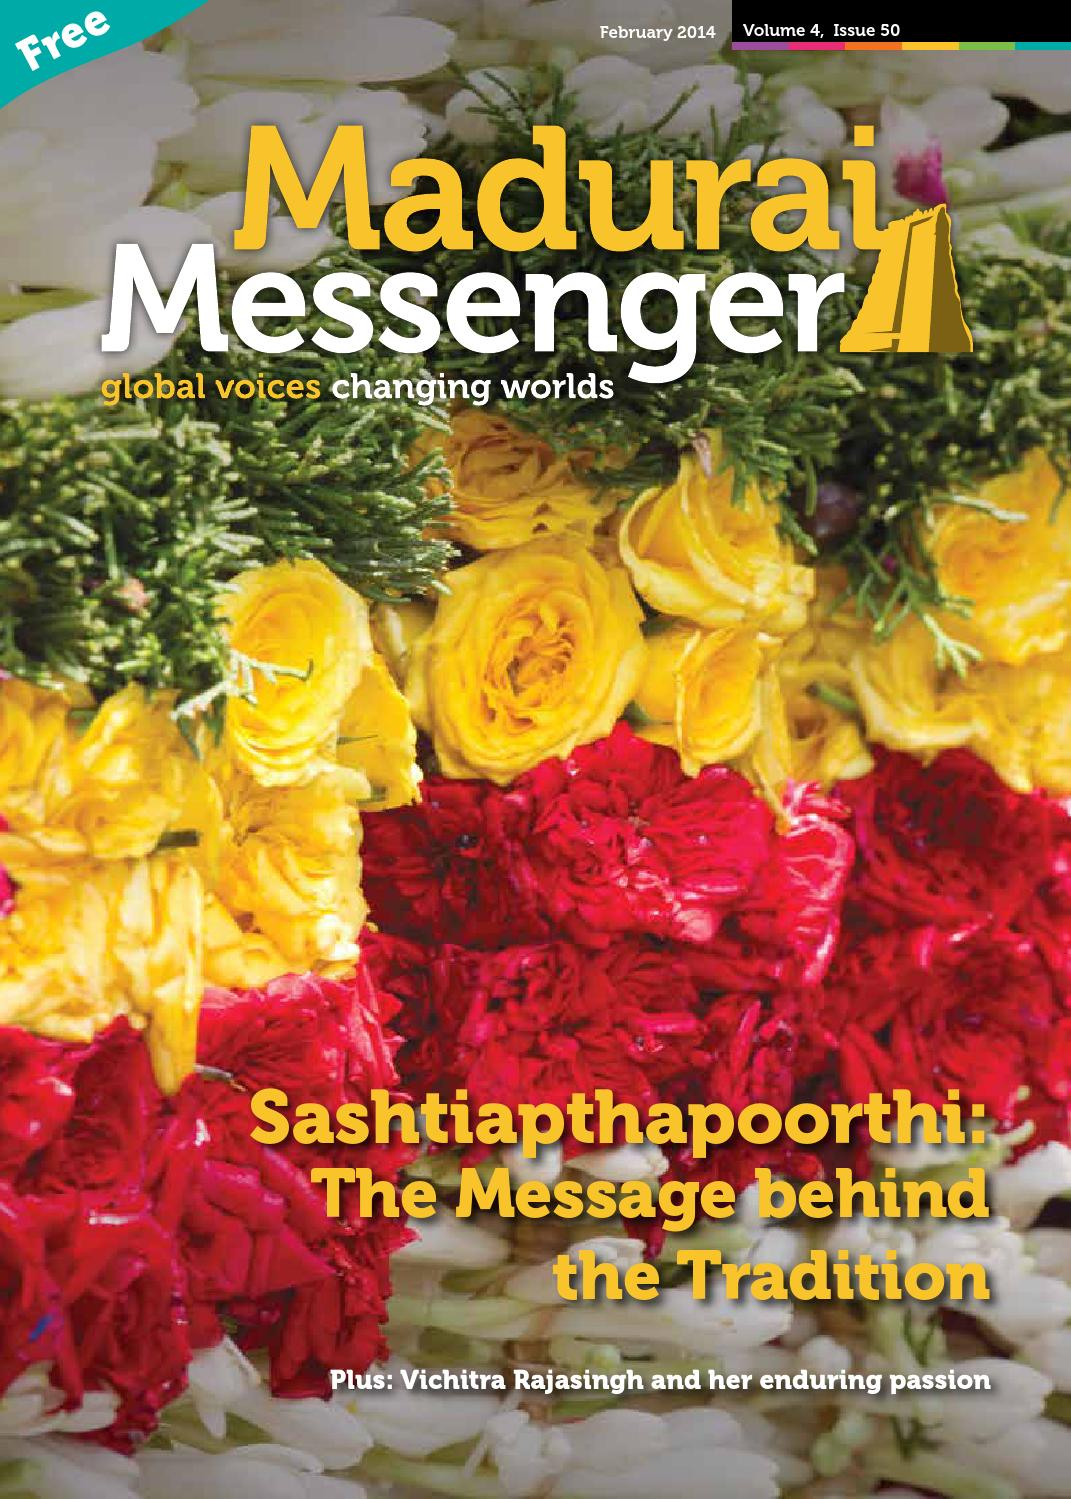 Maduraimessenger issue50 february lowres by Projects Abroad - issuu